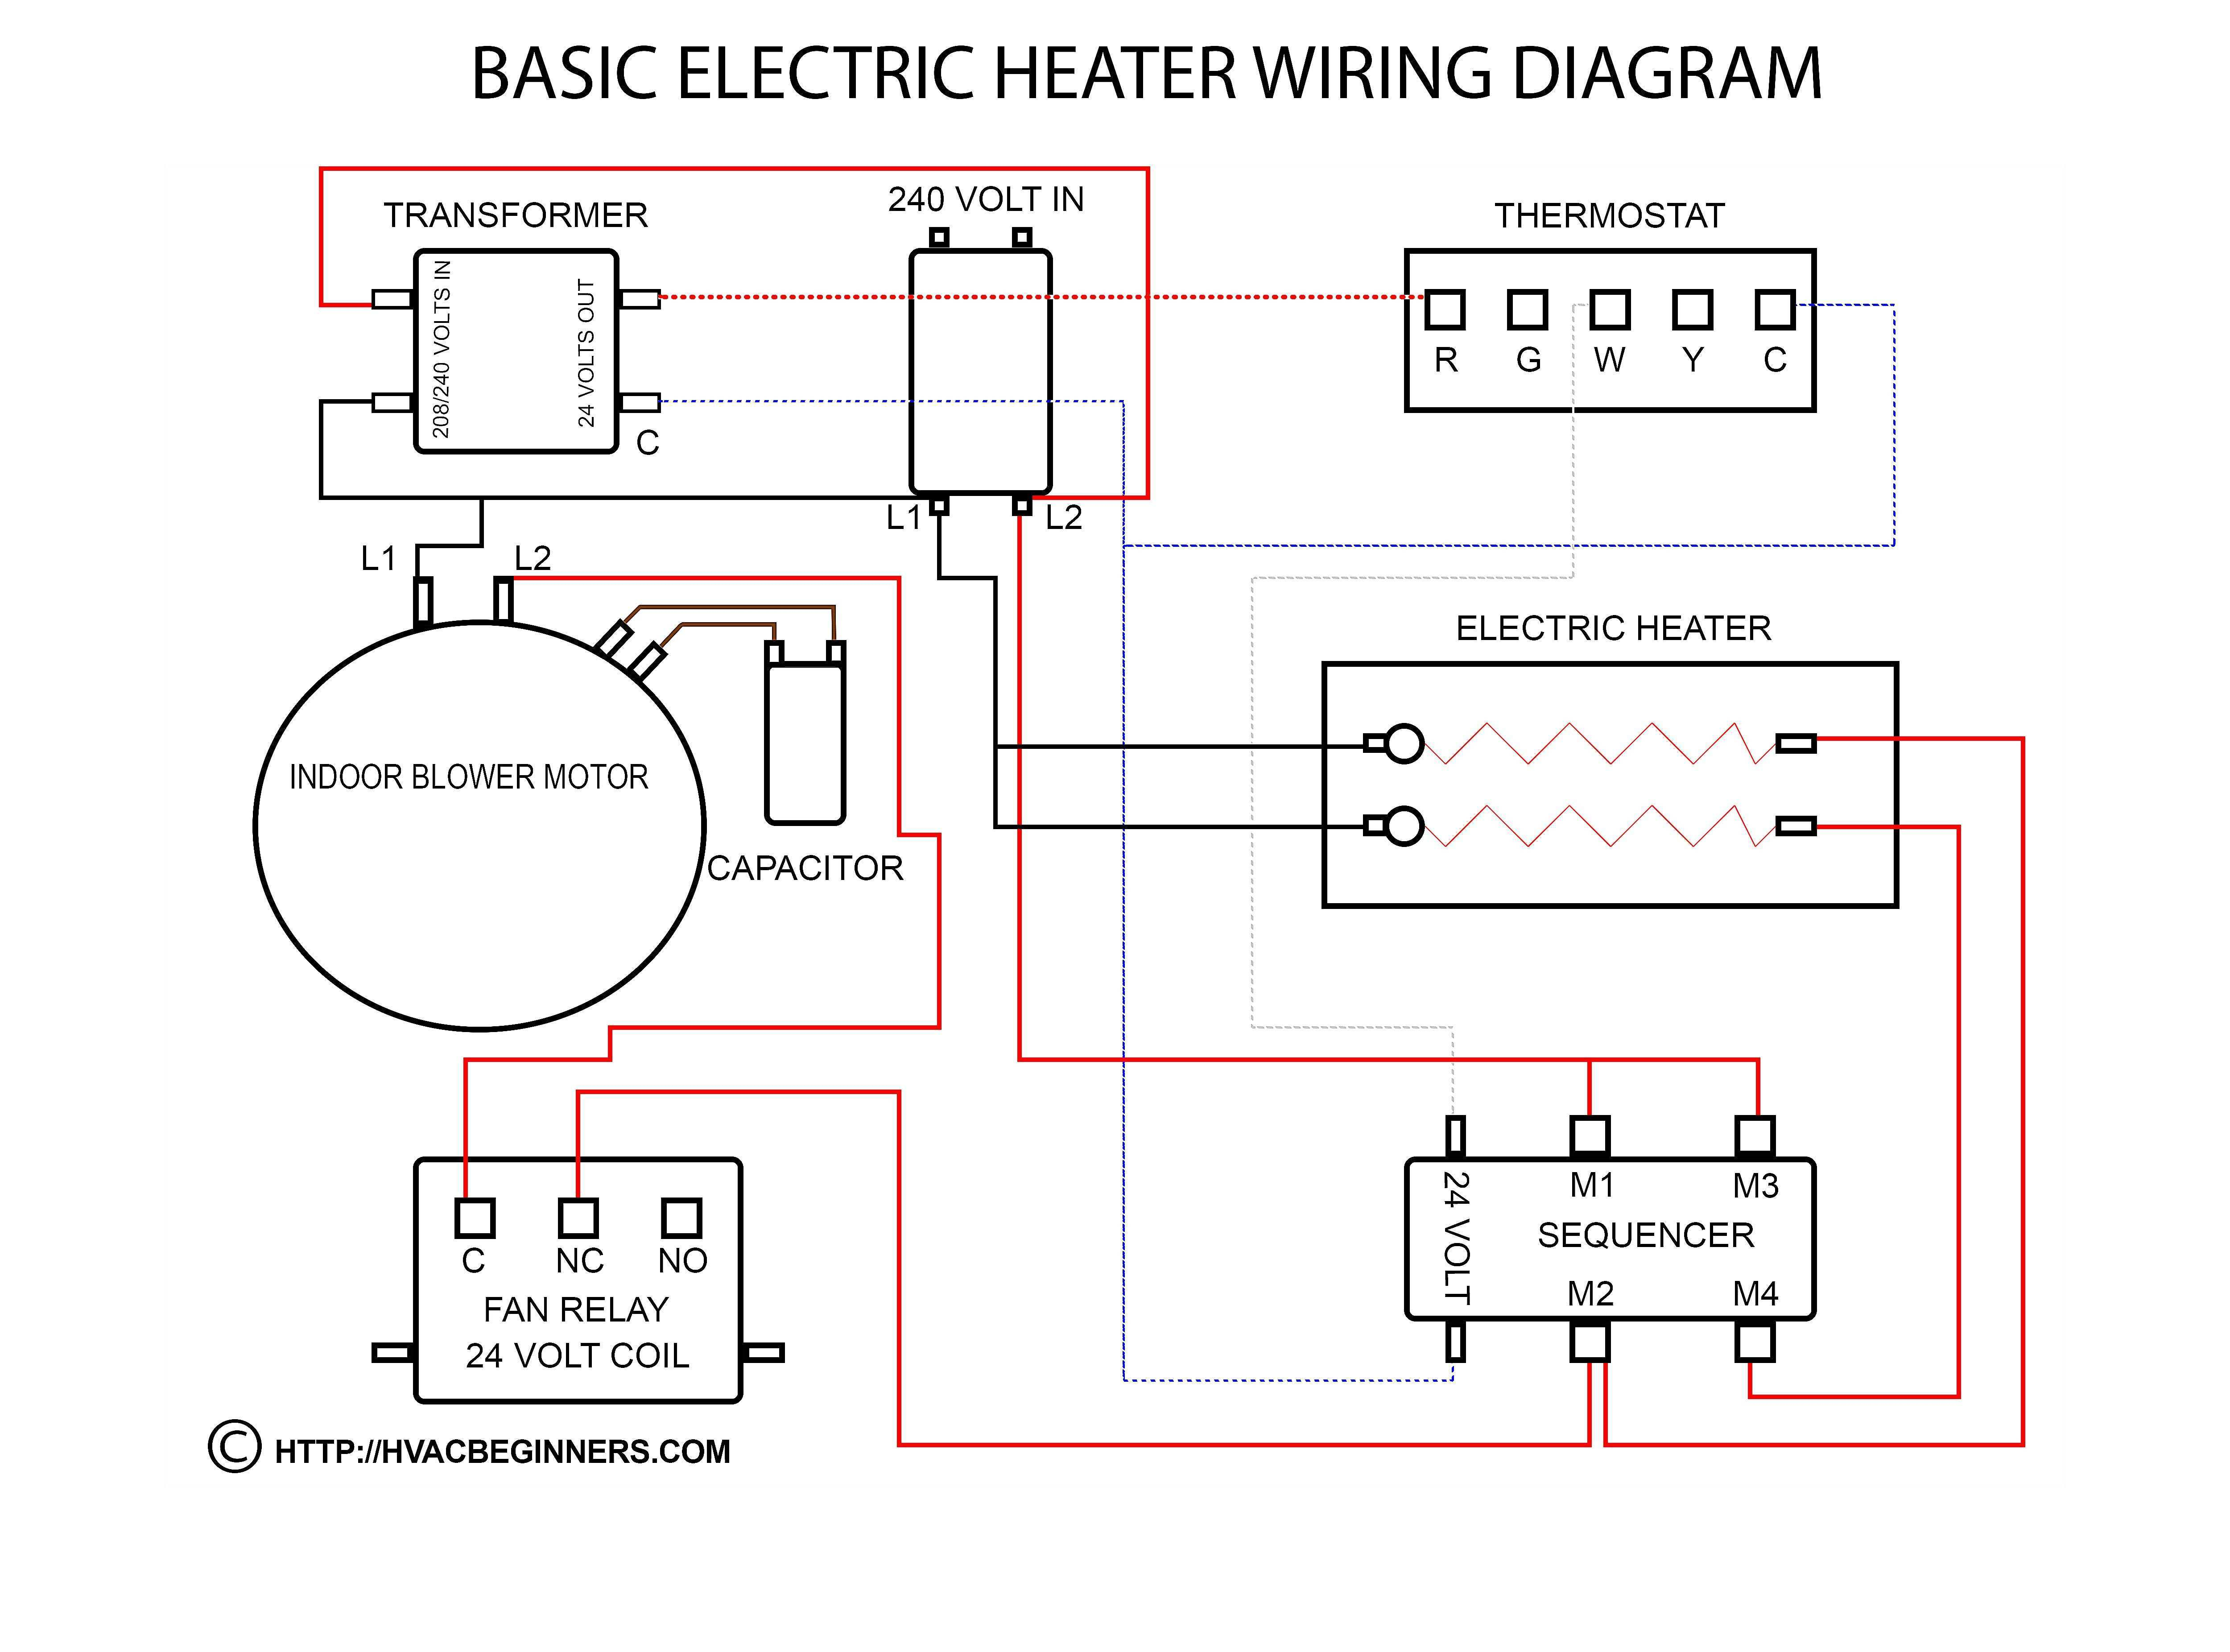 Electric Heater Wiring Diagram - Wiring Diagram Data - Electric Water Heater Thermostat Wiring Diagram